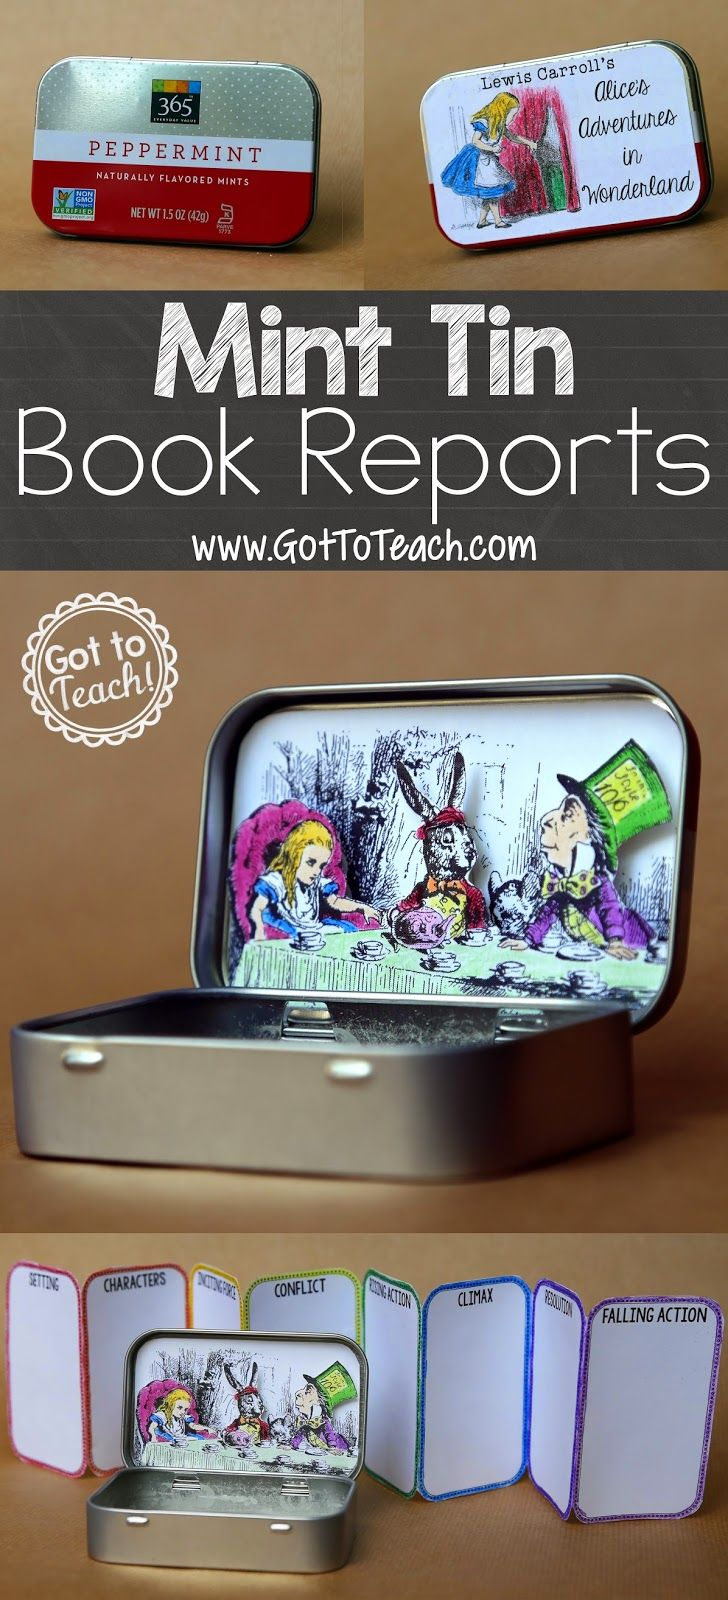 Another great alternative to traditional book reports.  Just gotta get enough mint tins!  Mint Tin Book Report